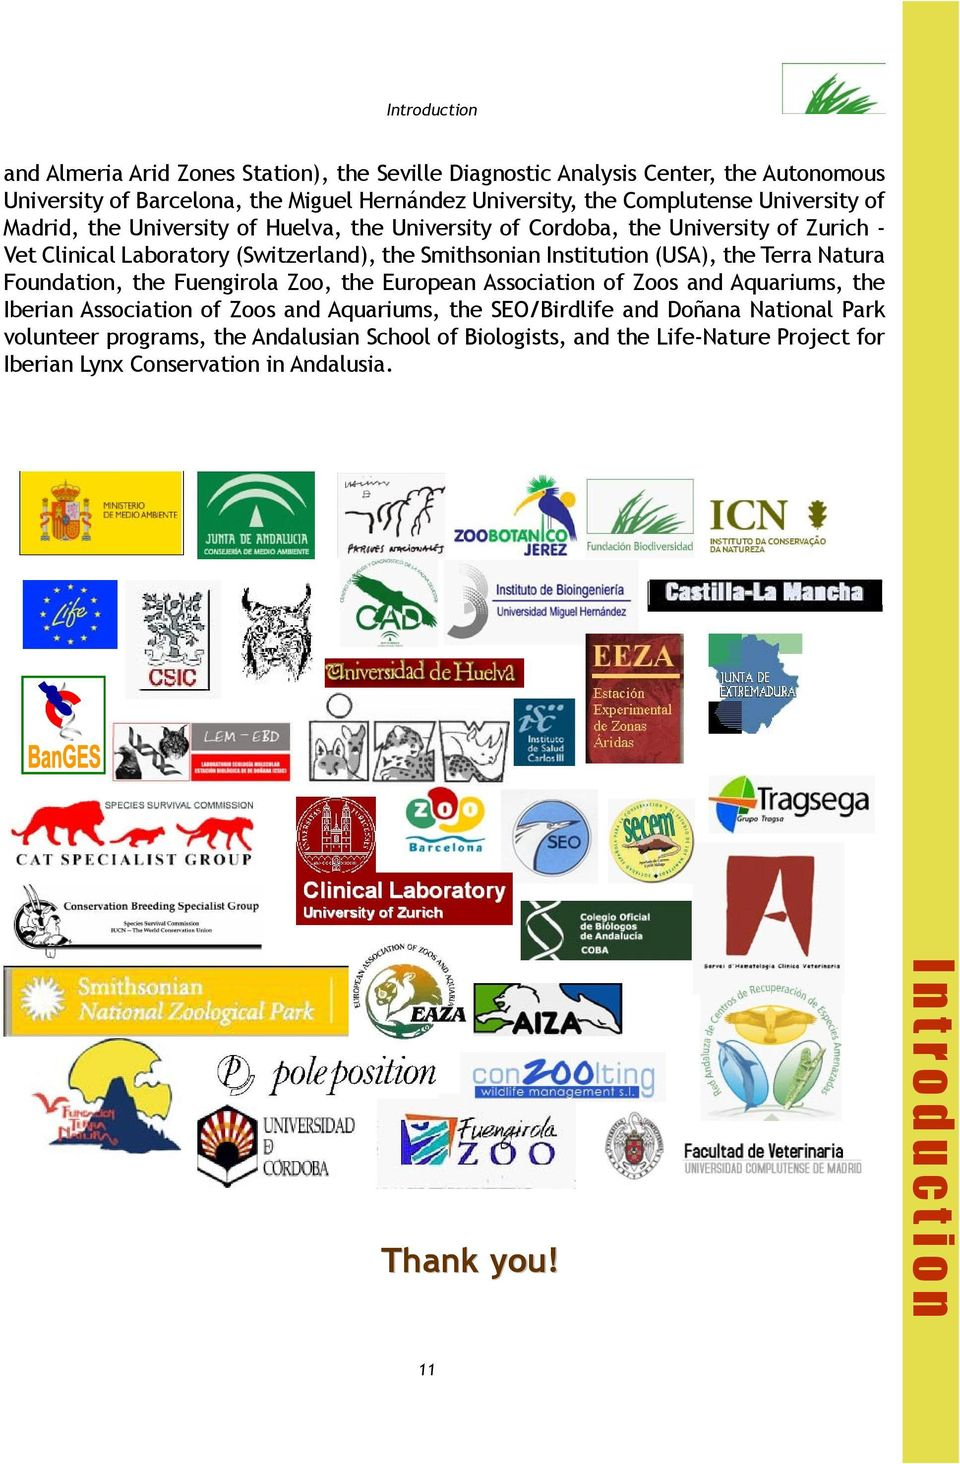 the Terra Natura Foundation, the Fuengirola Zoo, the European Association of Zoos and Aquariums, the Iberian Association of Zoos and Aquariums, the SEO/Birdlife and Doñana